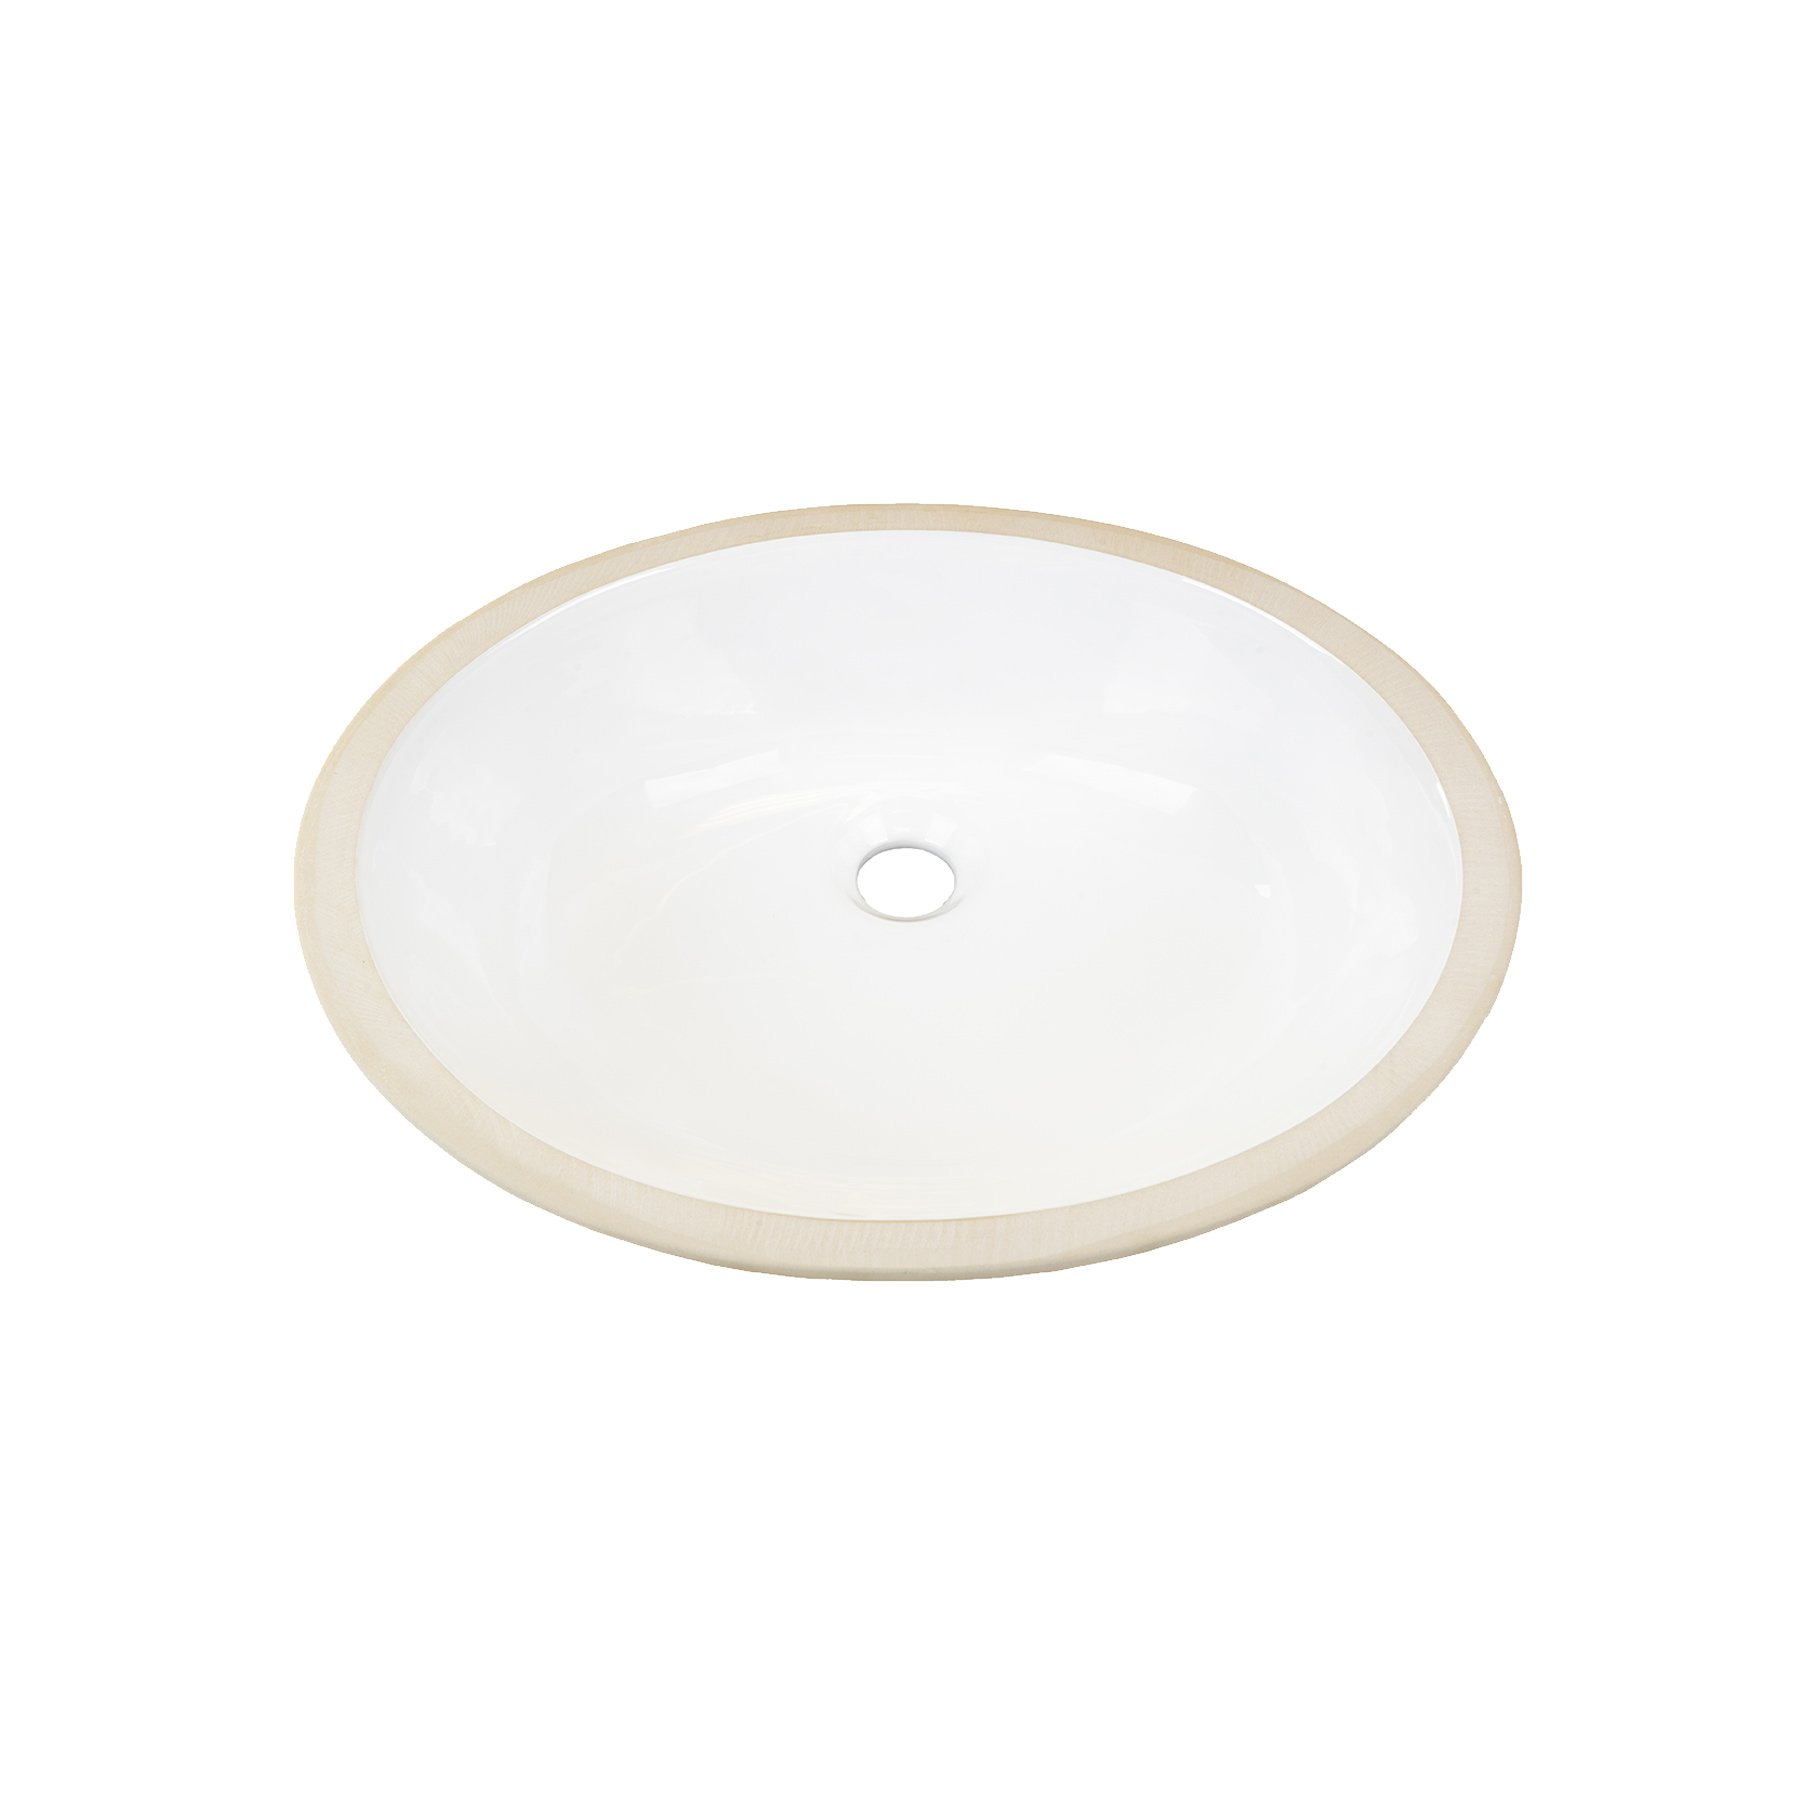 MAYKKE Landon Ceramic Undermount 19.5'' by 16.5'' Oval Bathroom Vanity Sink Only | With Overflow, For Vanity Cabinet Countertop, cUPC Certified | White YSA1081701 by Maykke